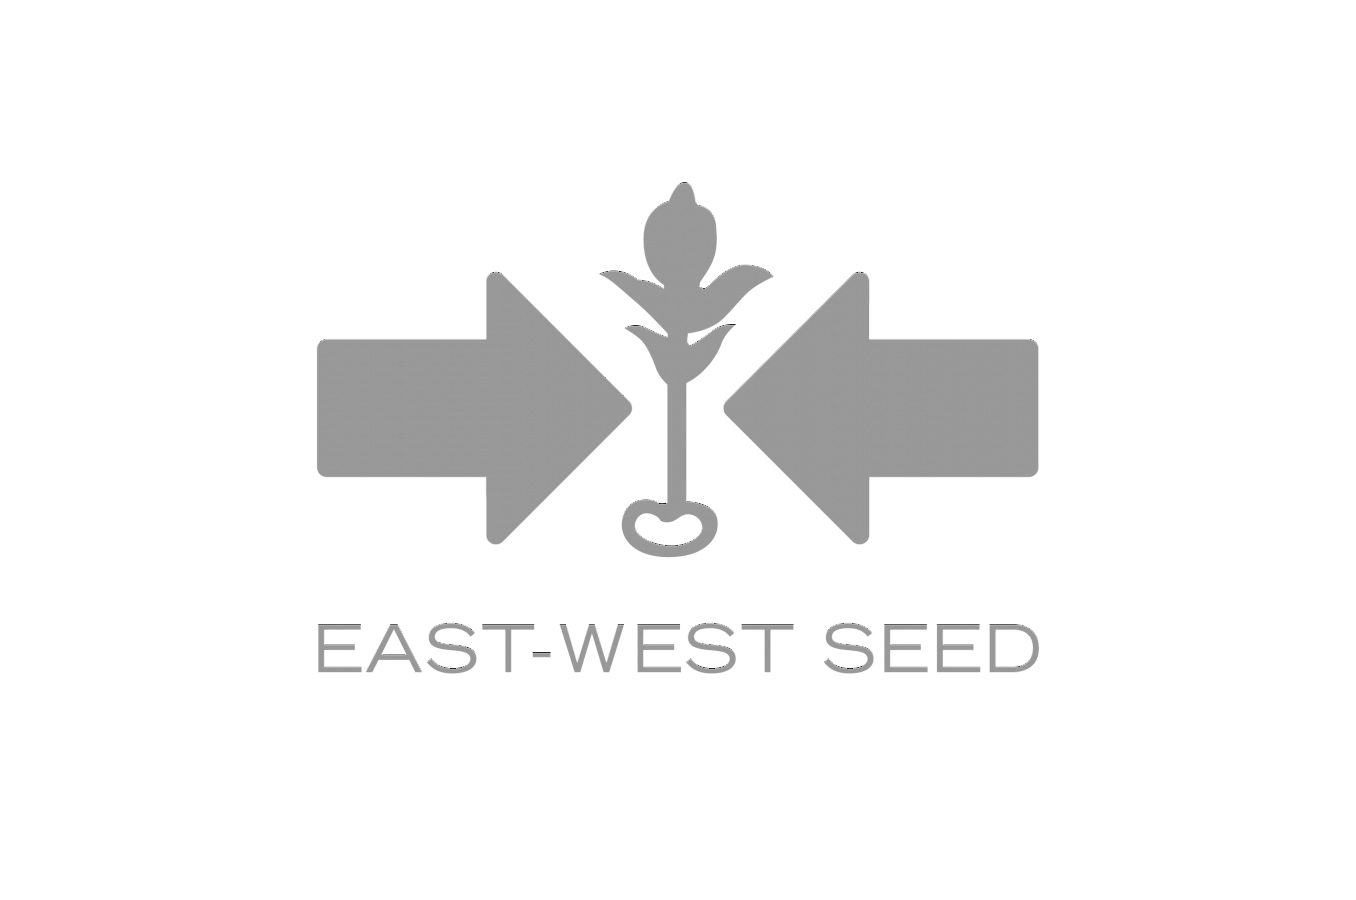 East - West Seed